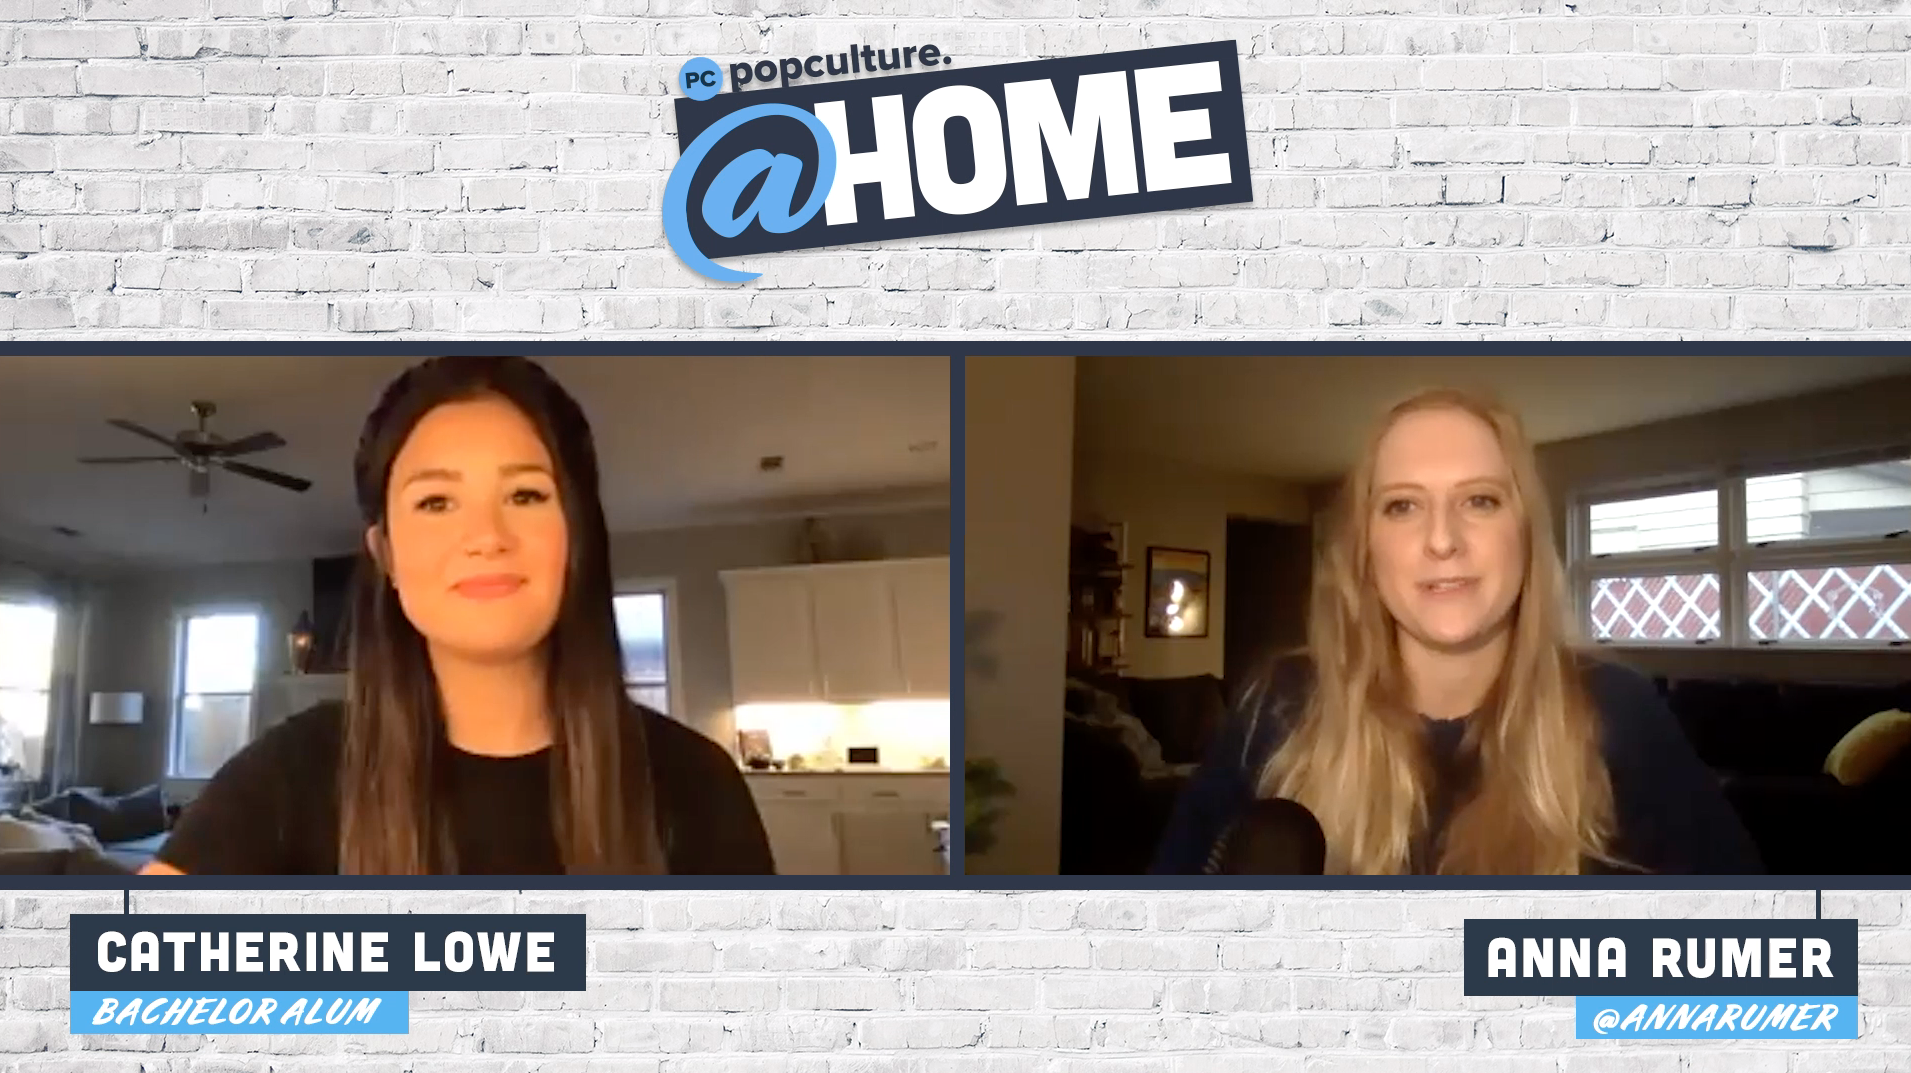 Catherine Lowe - PopCulture @Home Exclusive Interview